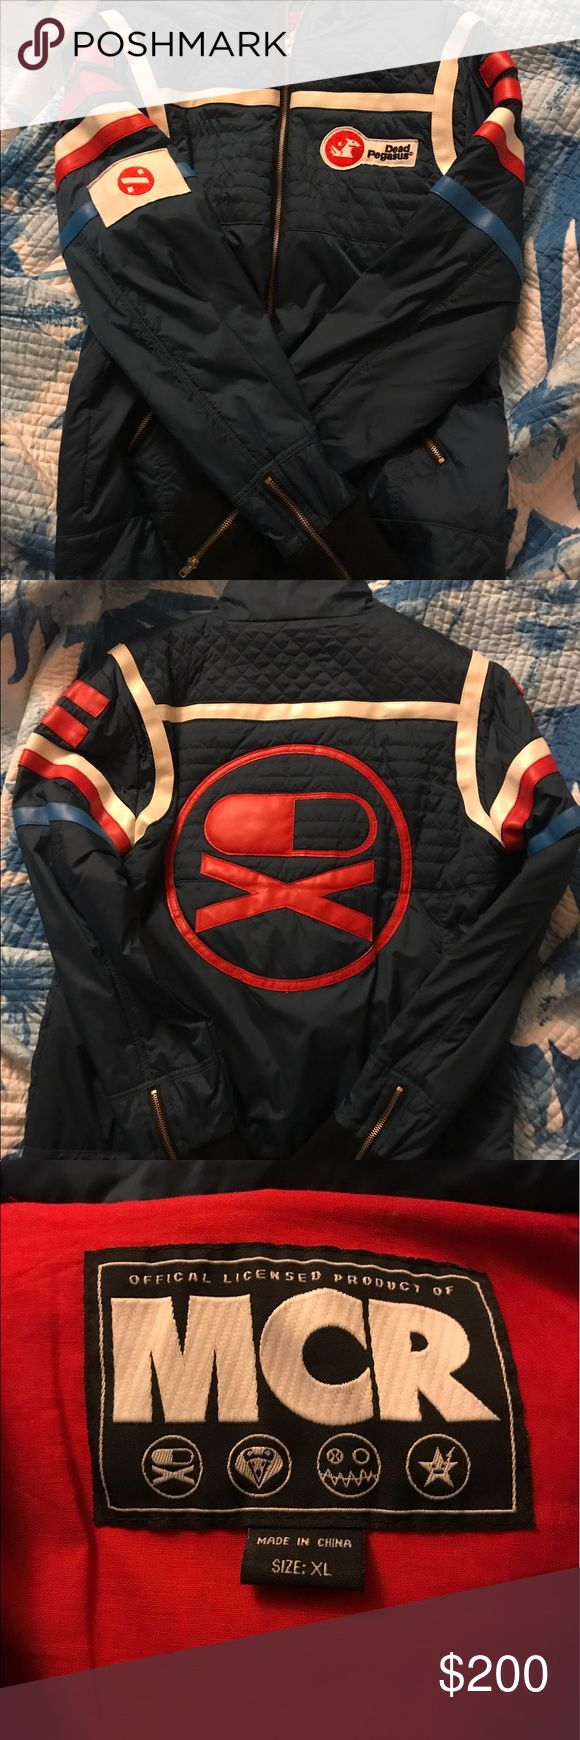 My chemical romance party poison jacket Extremely rare my chemical romance danger days jacket. Gerard Way Party Poison style. This is an officially licensed product. Perfect for every day wear or cosplay. I love this jacket but I need to sell it for money for a car. There are some flaws. The threading in the front of the jacket are coming loose in some areas. There are 2 small pinhole marks. Some loose threads on some of the badges. See photos for all flaws. There were only a small amount of…